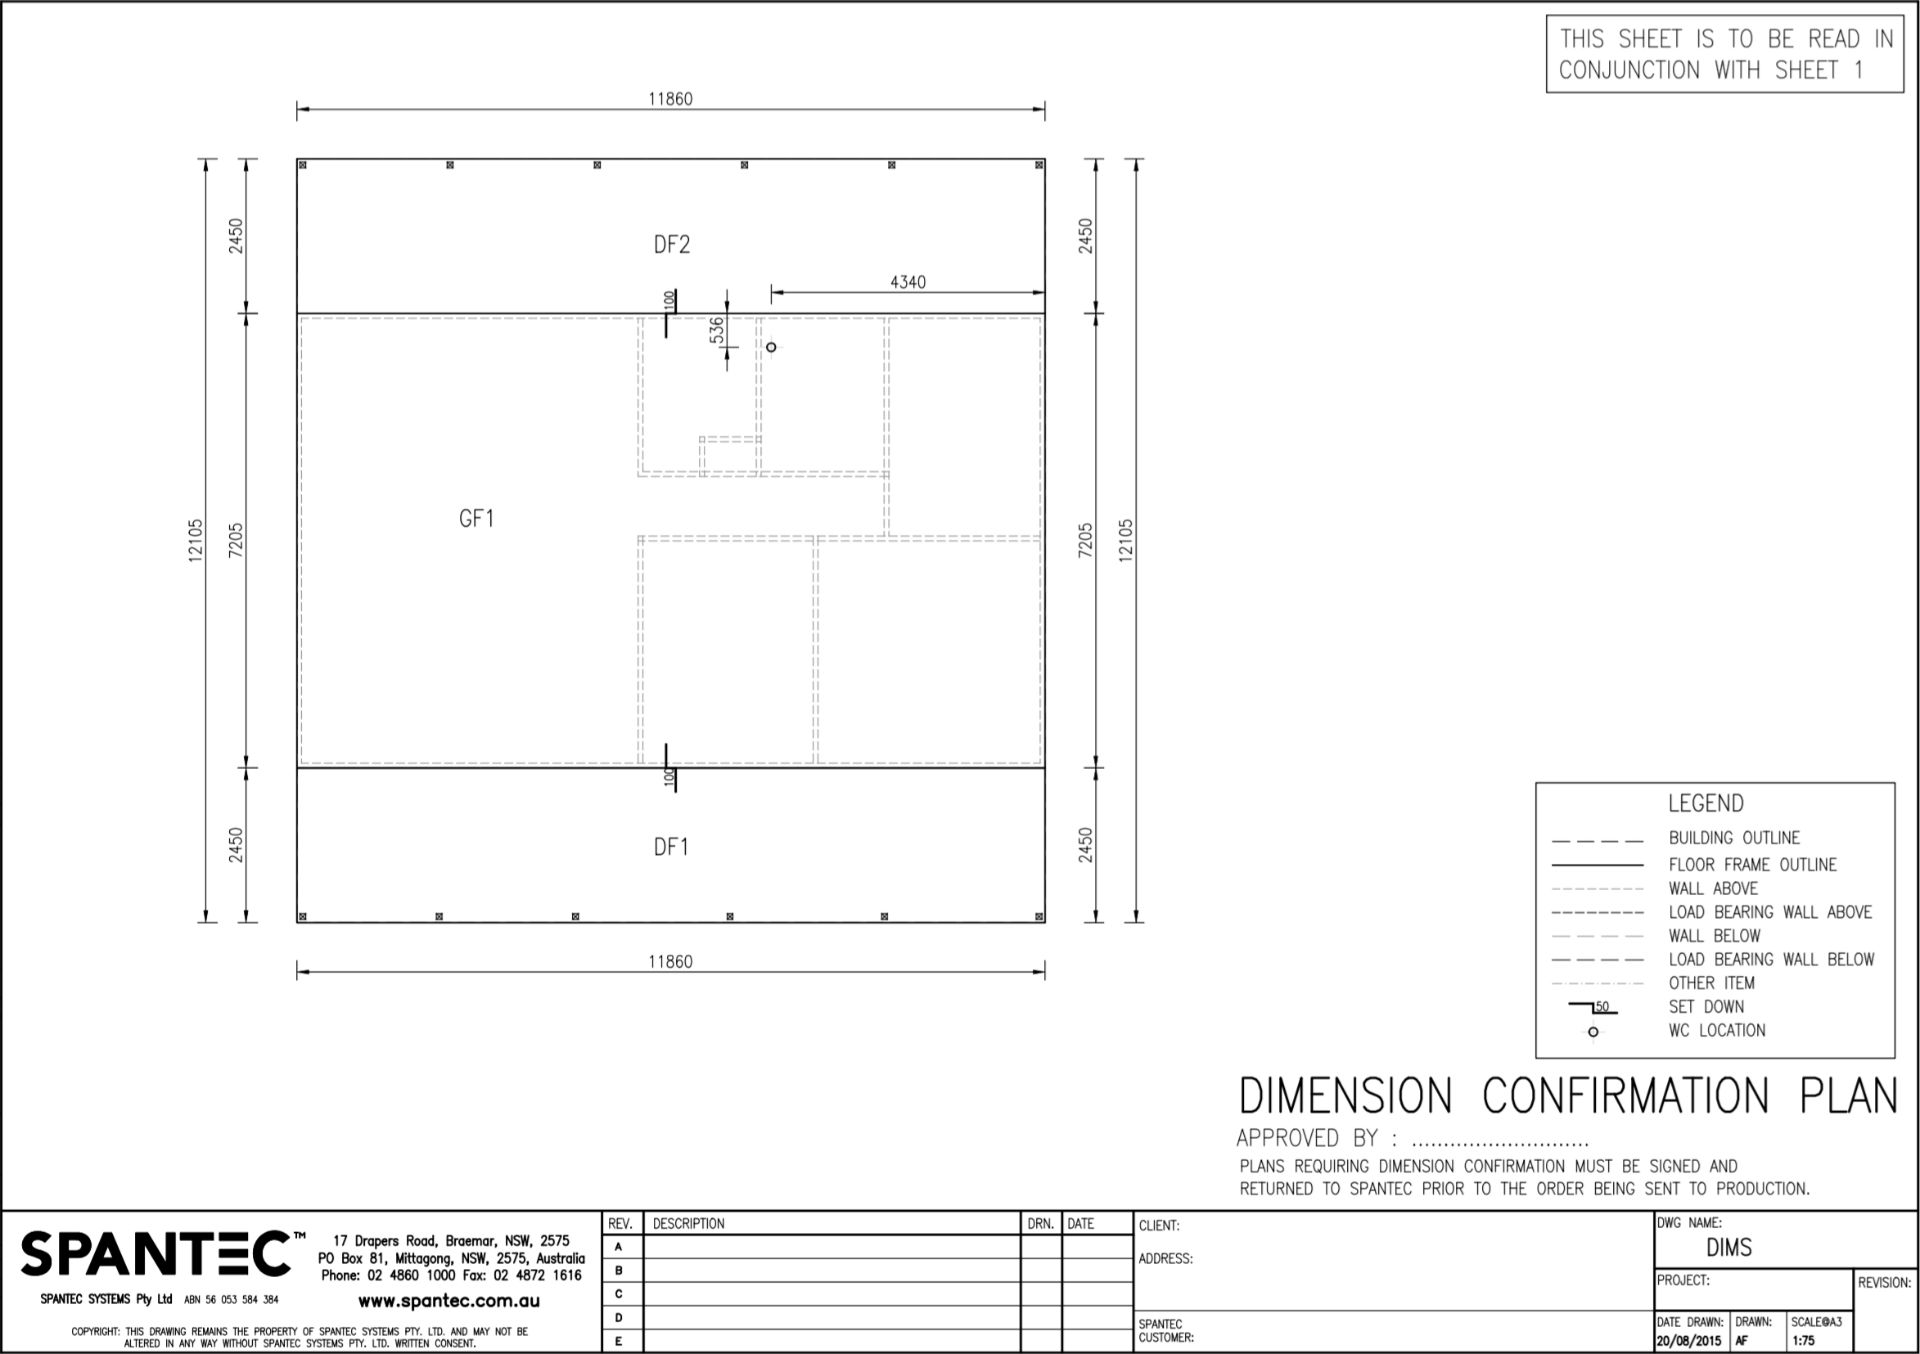 Example of a Dimension Confirmation Plan which details overall dimensions of the steelframes produced using CAD